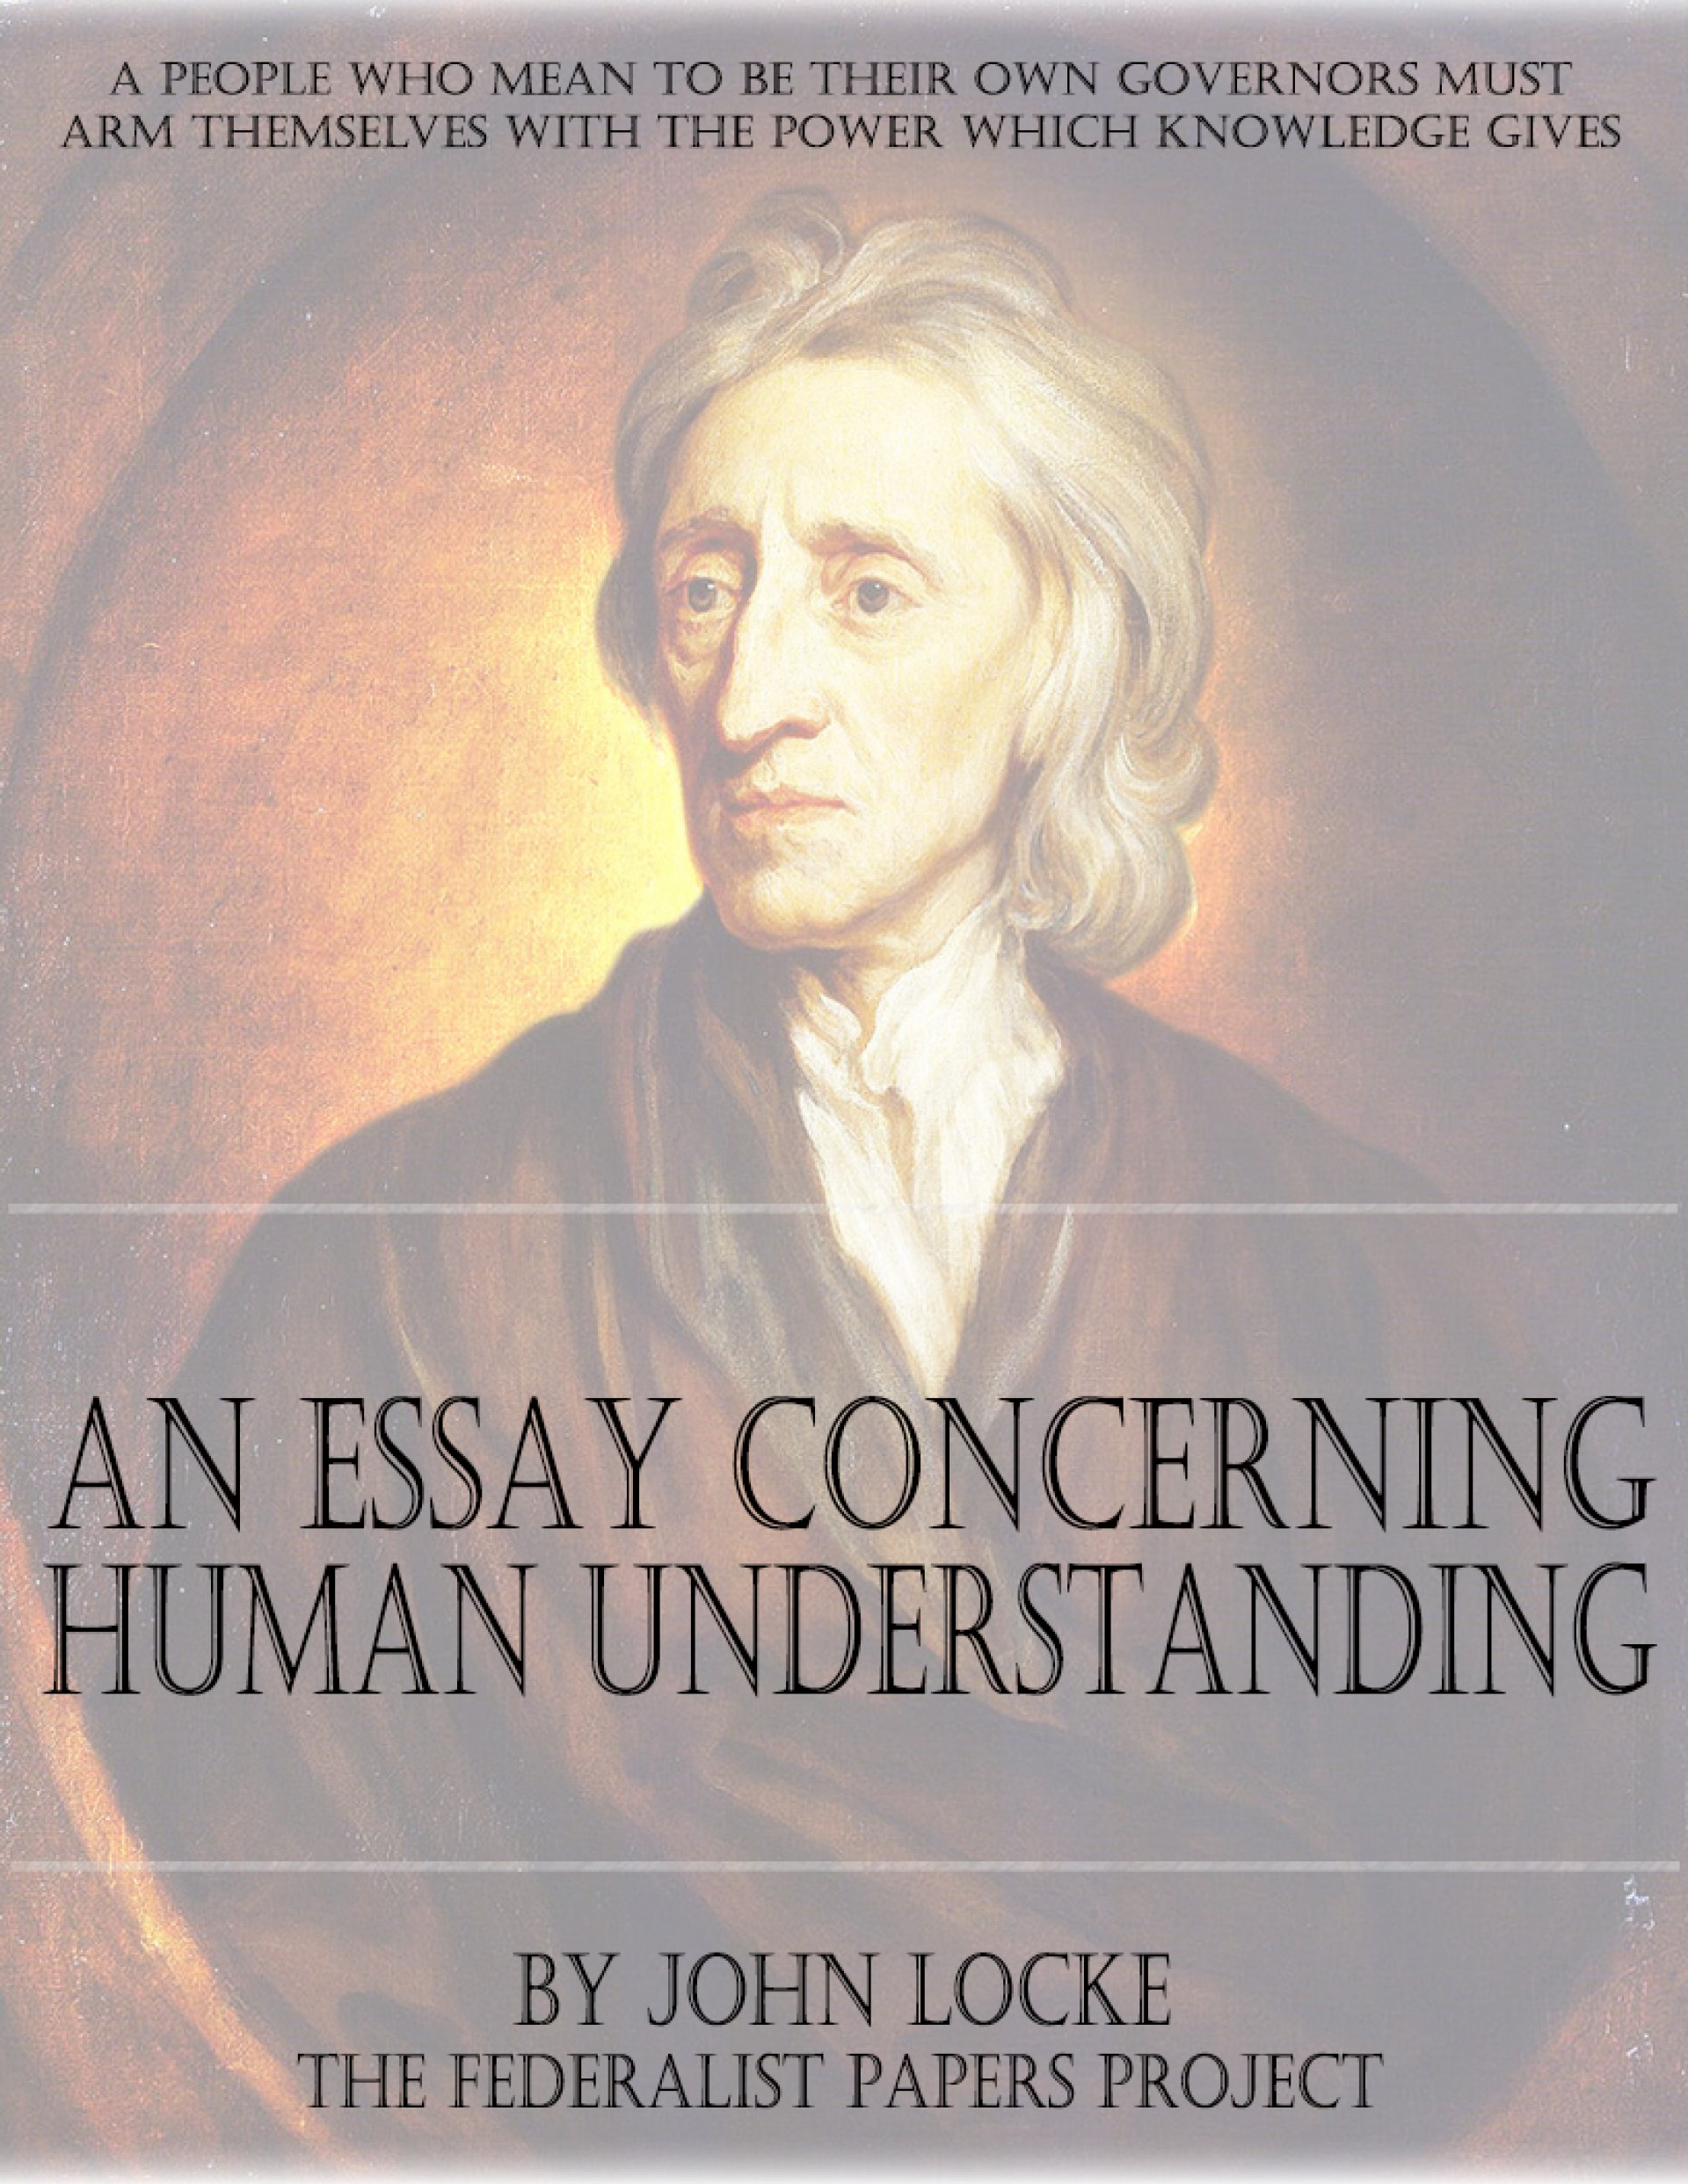 004 John Locke An Essay Concerning Human Understanding Cover Page1 Phenomenal Citation Full Text Pdf Book 2 Summary 1920